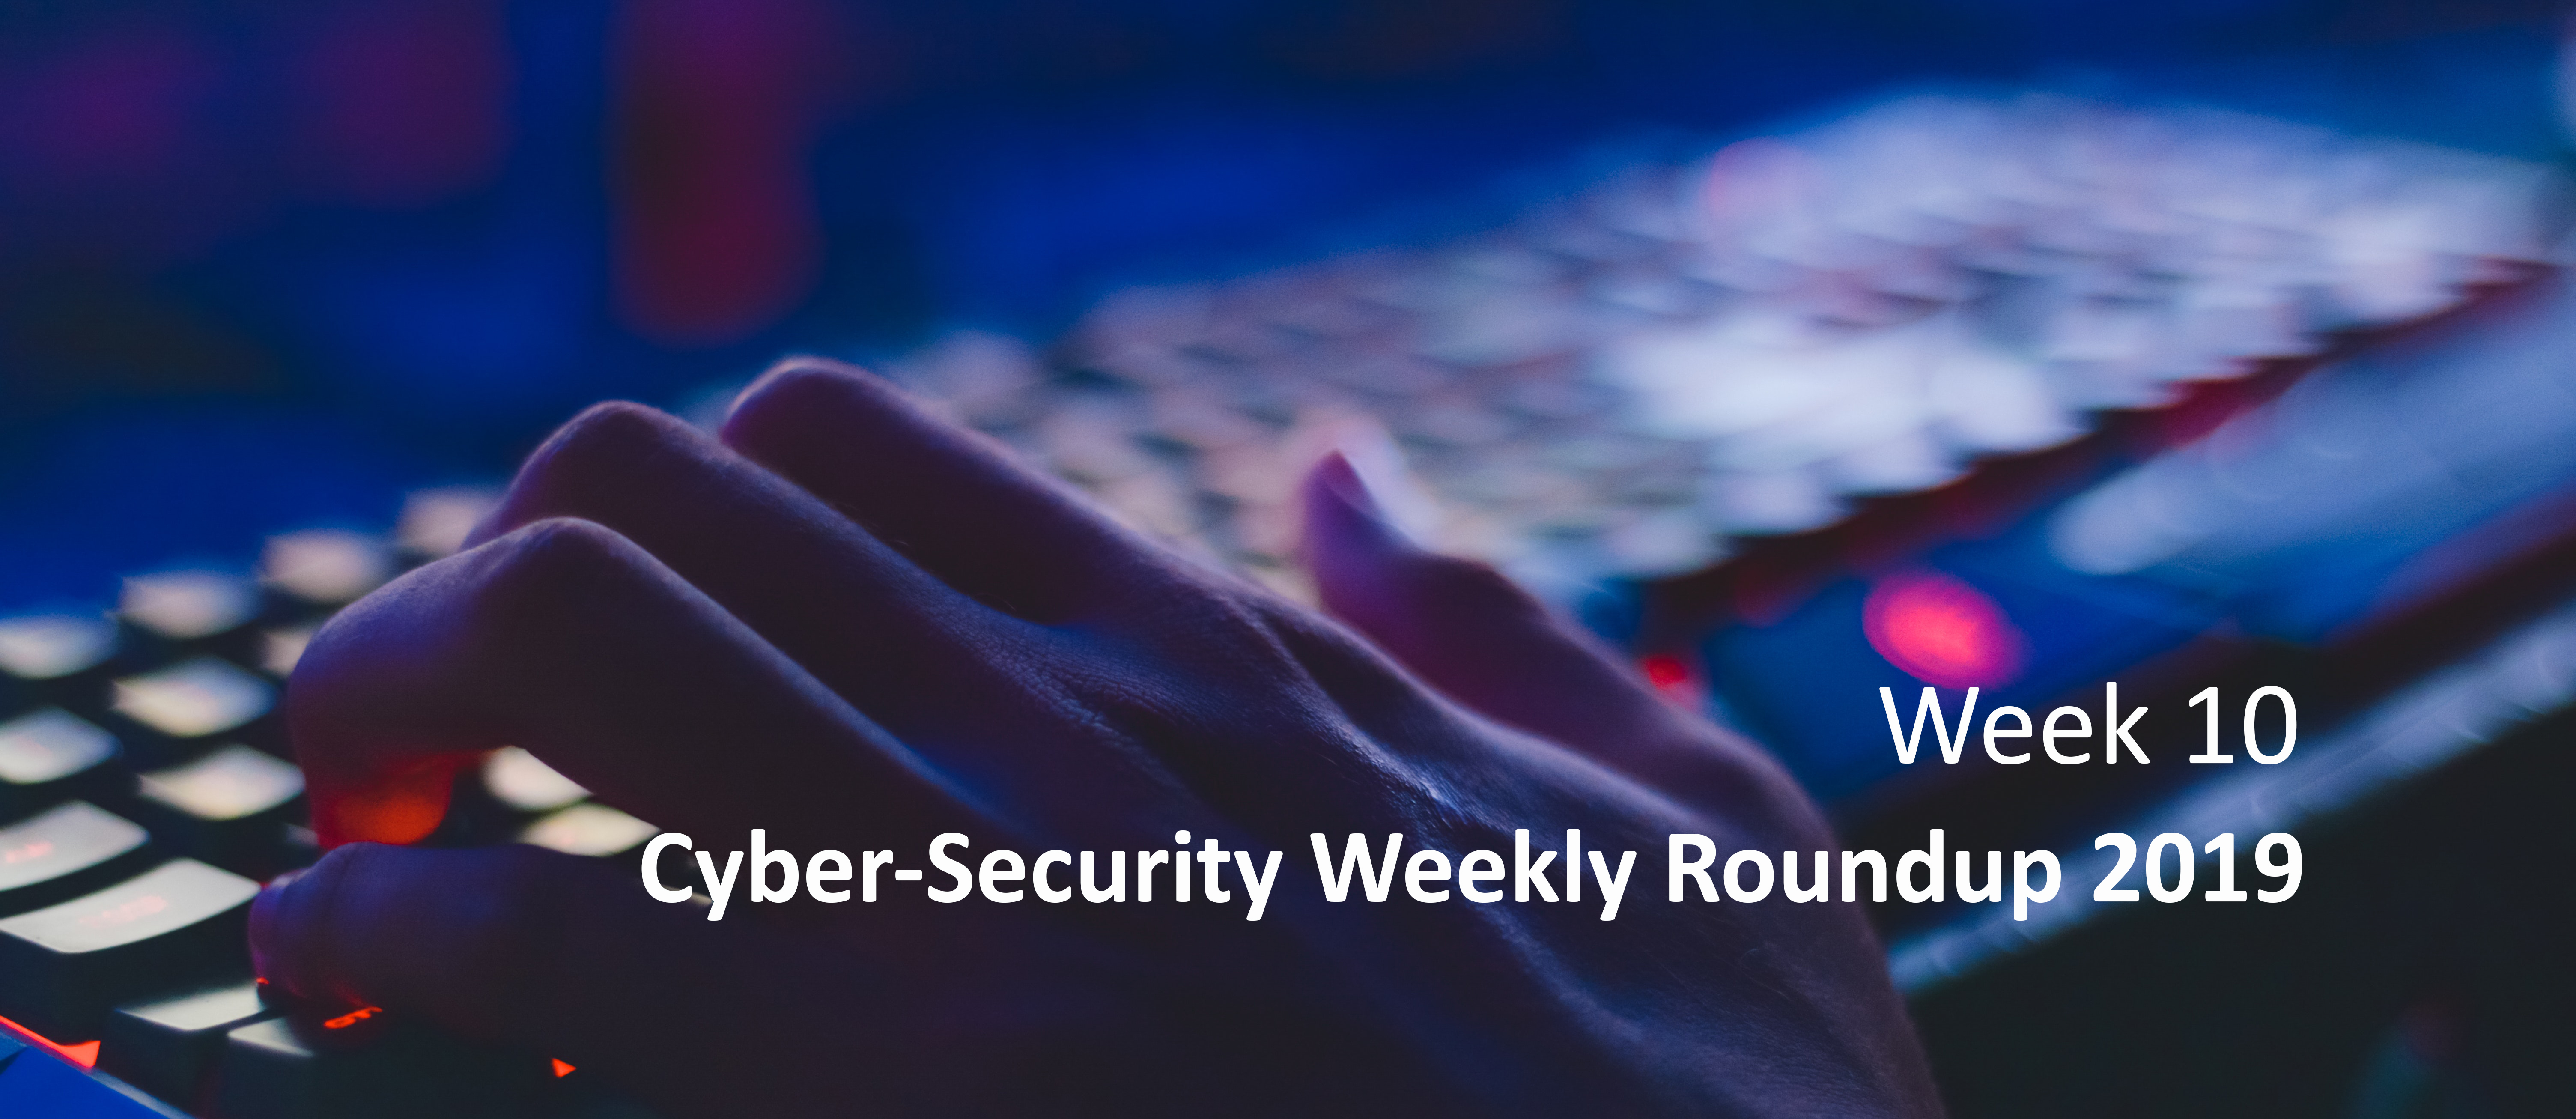 Cyber Attack Weekly Round Up wk 10